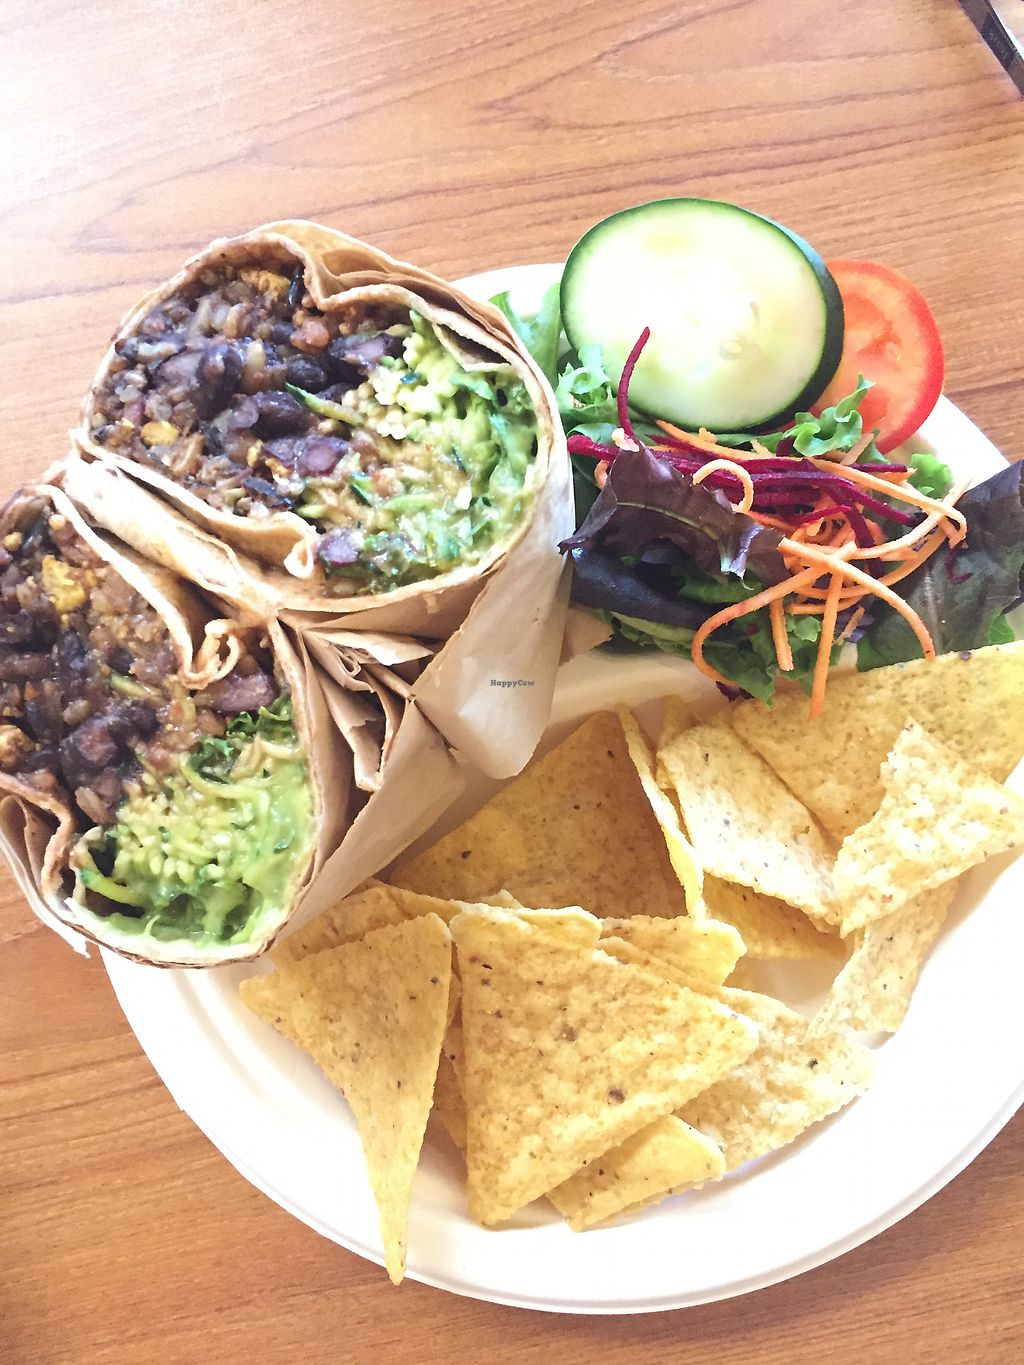 """Photo of Stuff I Eat  by <a href=""""/members/profile/Deliciaanne"""">Deliciaanne</a> <br/>Lunch Burrito <br/> October 10, 2017  - <a href='/contact/abuse/image/14920/314073'>Report</a>"""